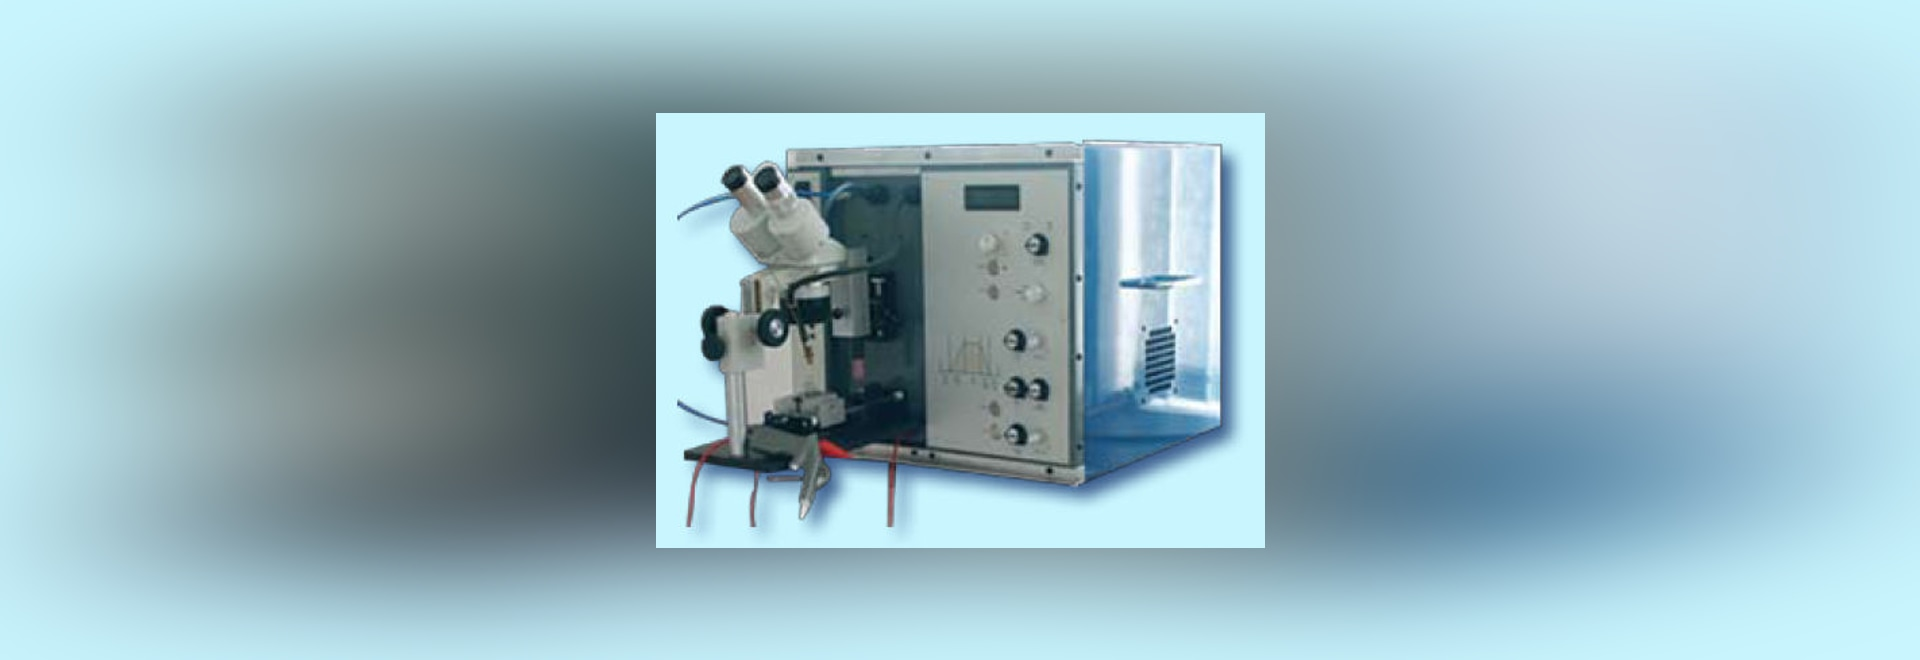 NEW: automatic welding machine by Temperature Technology Ltd